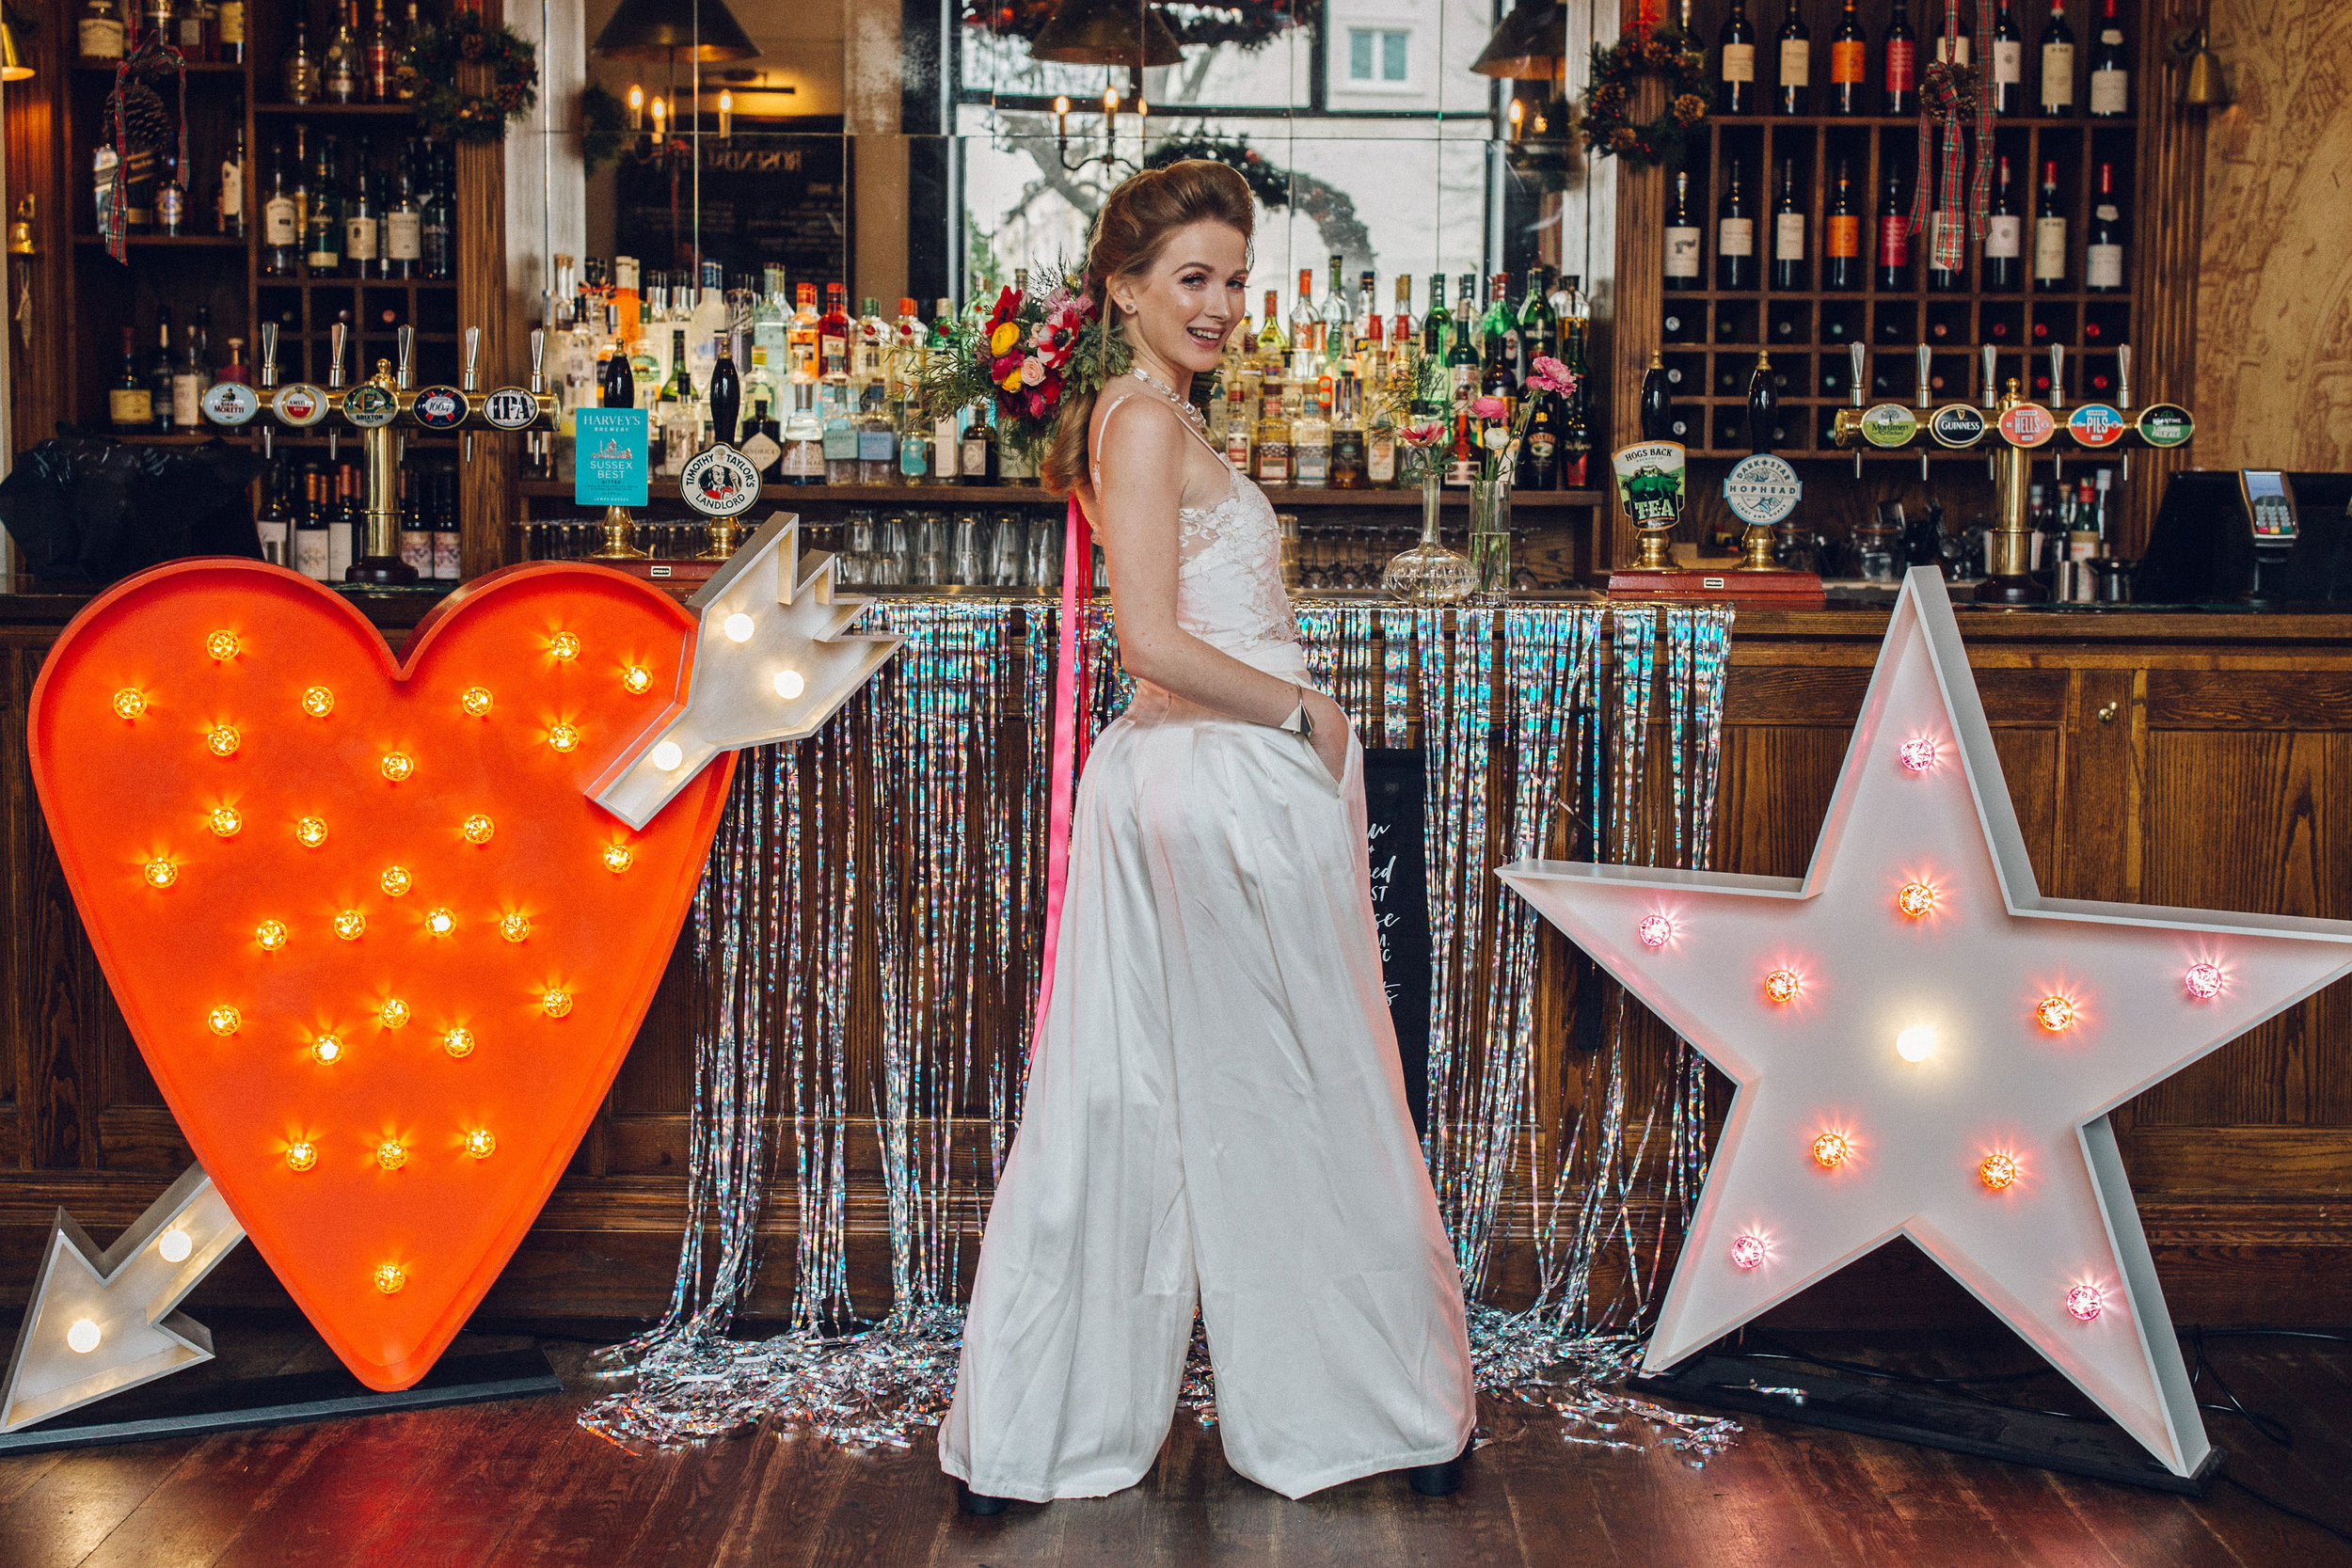 Bridal Jumpsuit Coord Alternative 2019 bridal trends London Pub Wedding